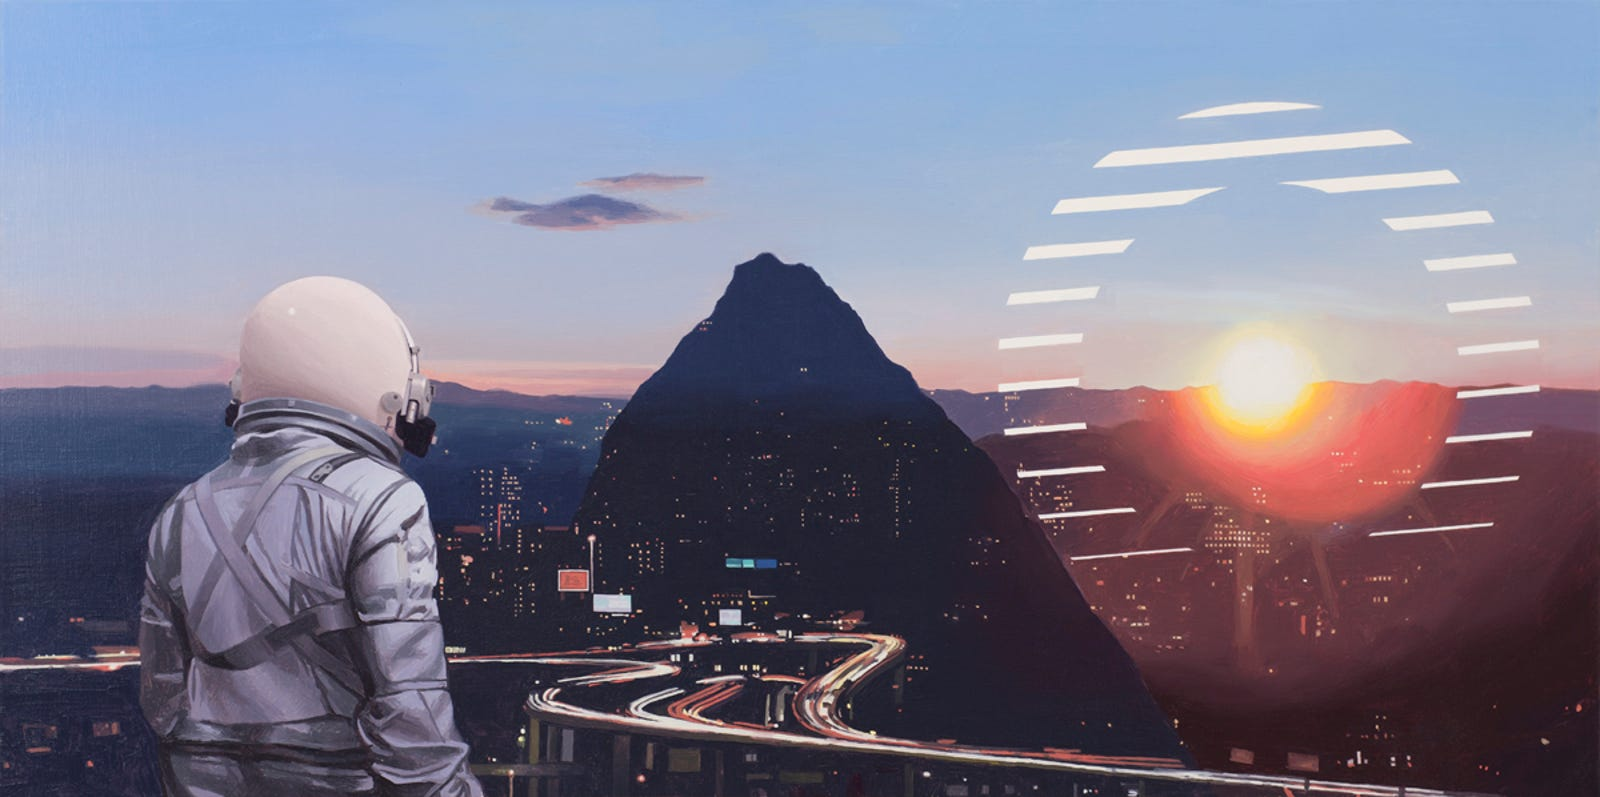 Sun Sets on the City by Scott Listfield